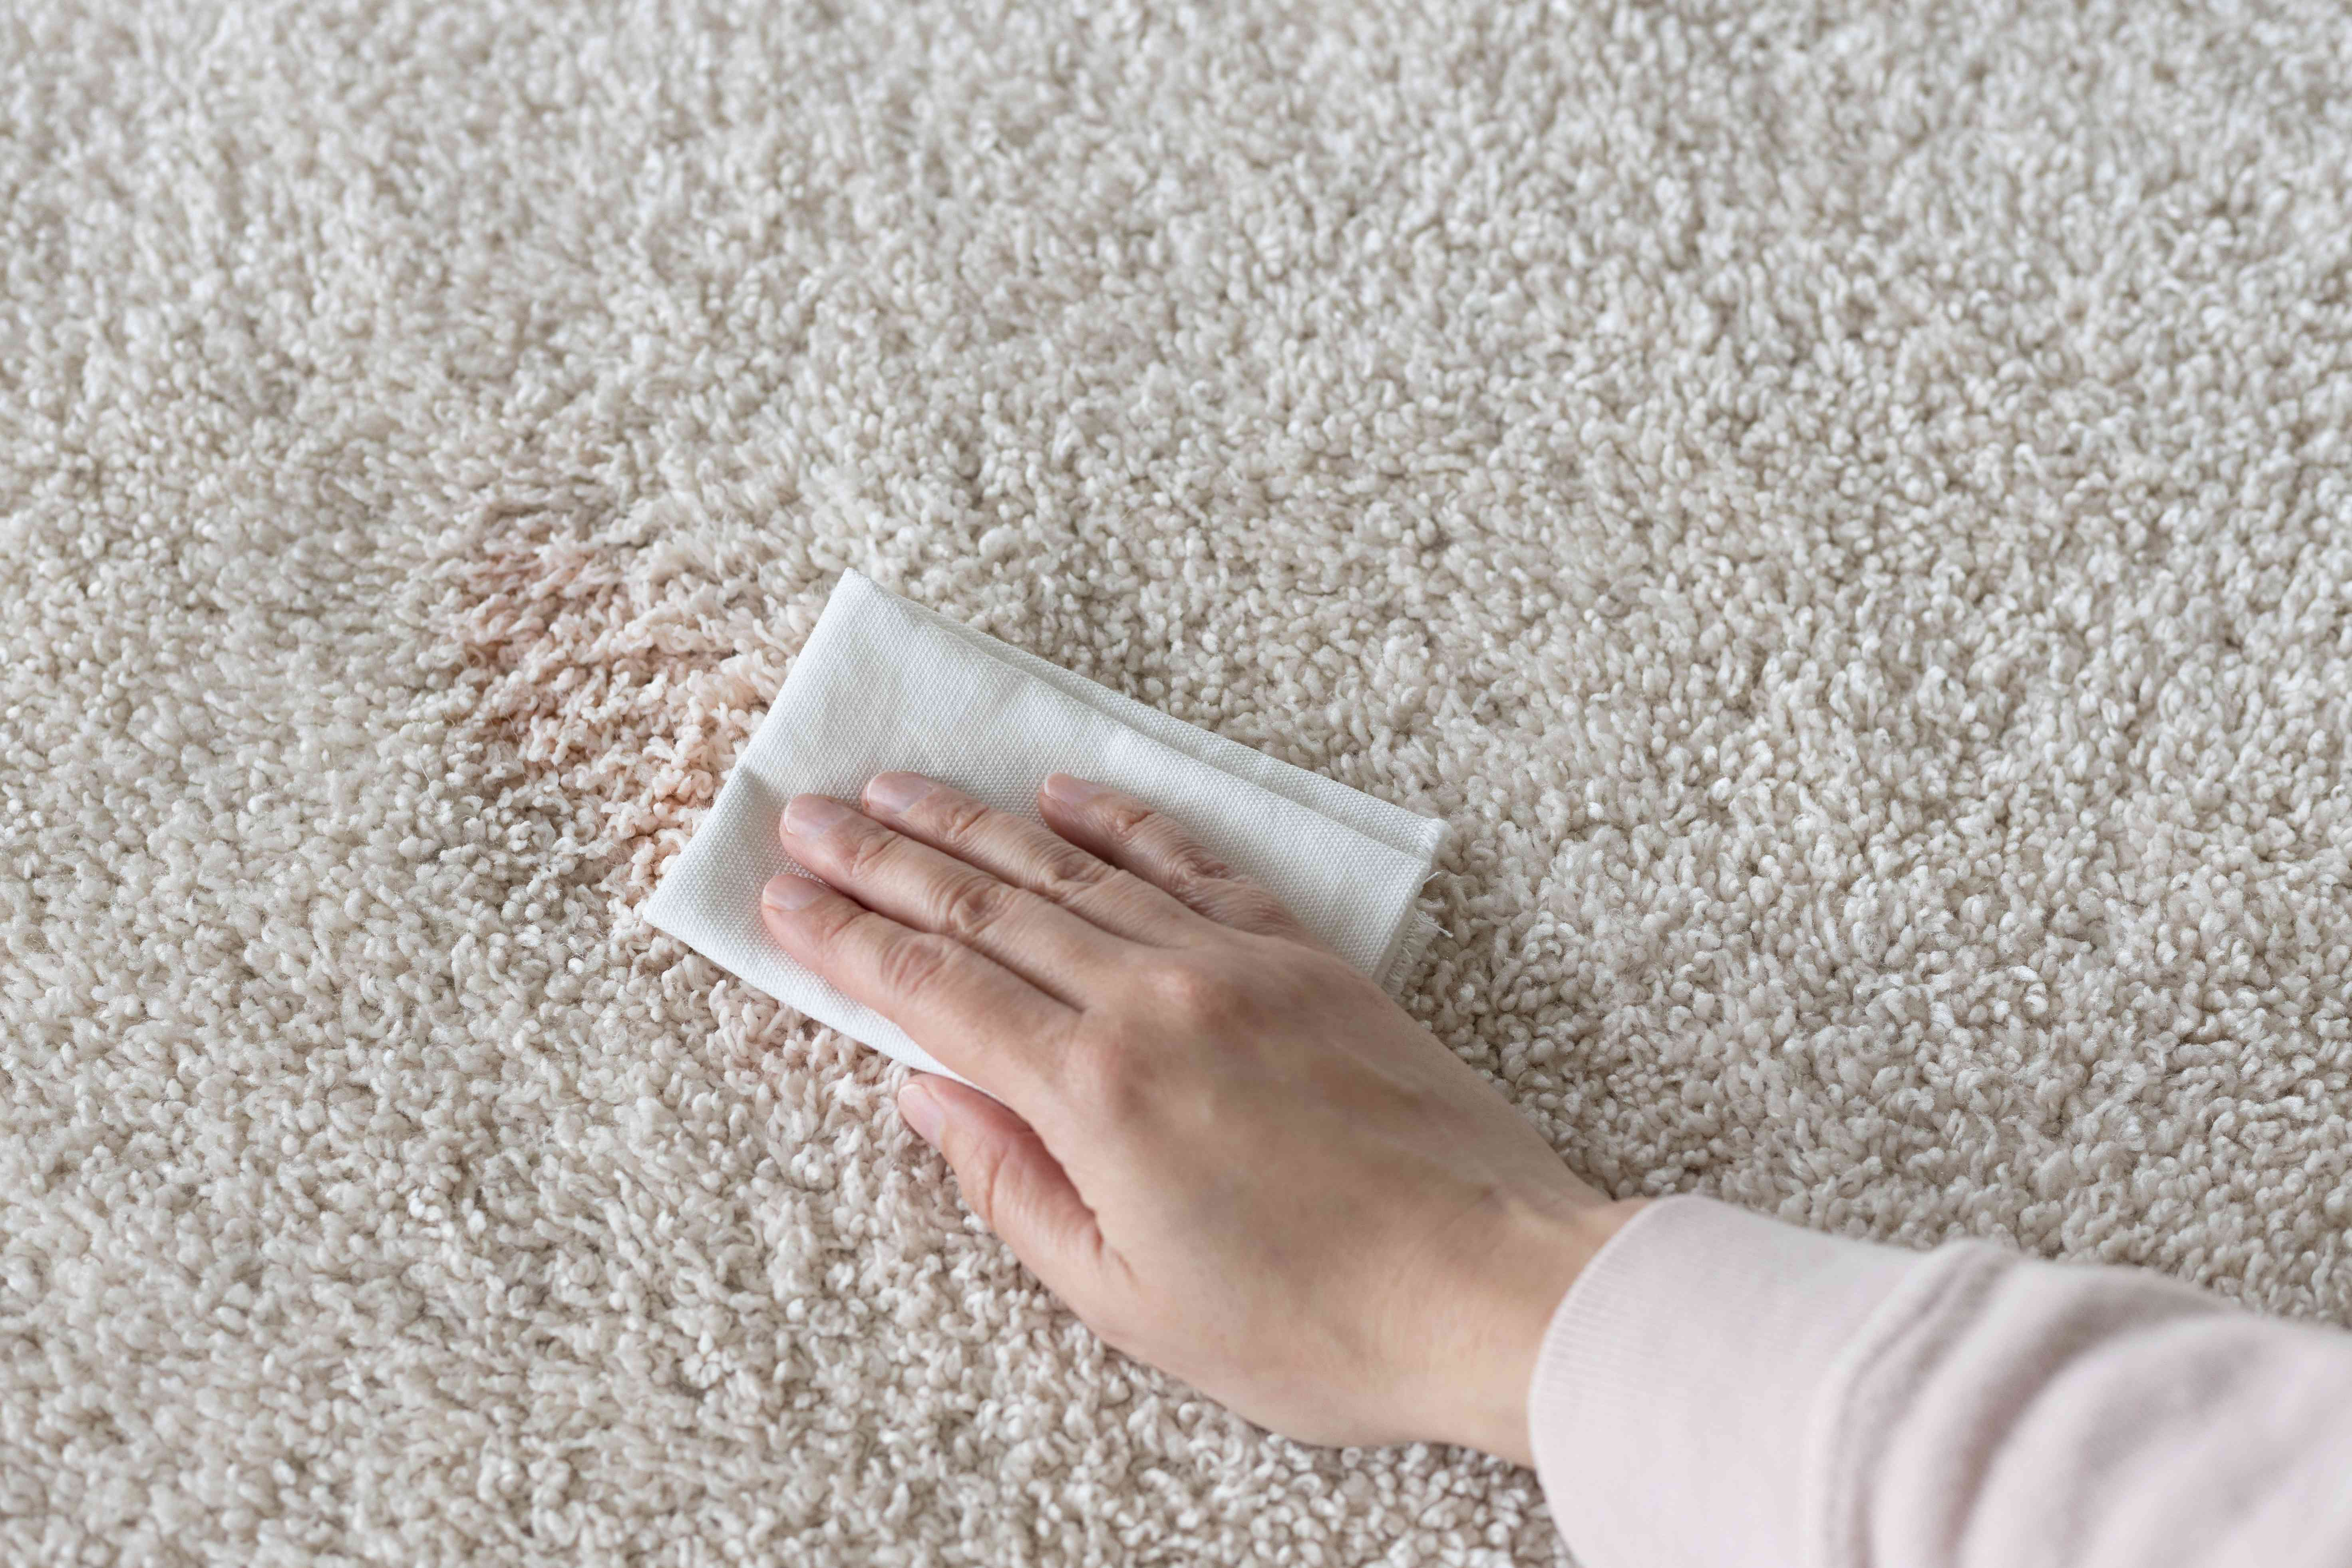 Cream-colored carpet with fruit punch stain blotted with white cloth and cleaning solution